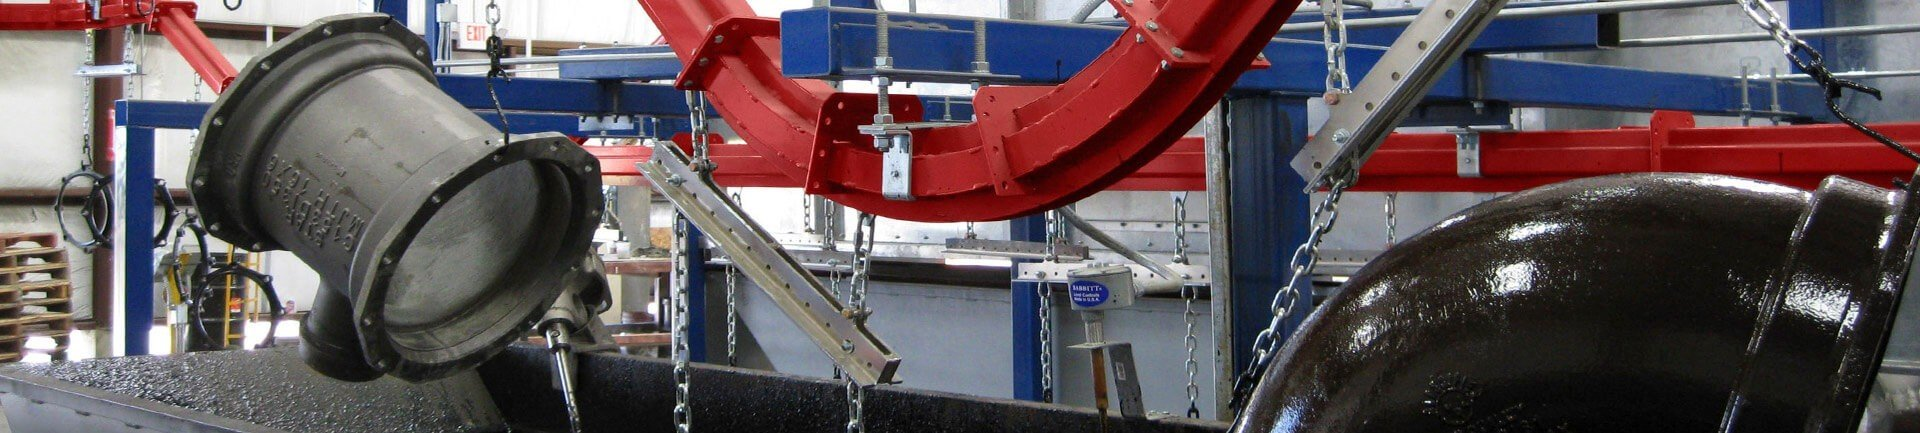 Overhead conveyors are a great option for handling products through an automated finishing system involving dip tanks.